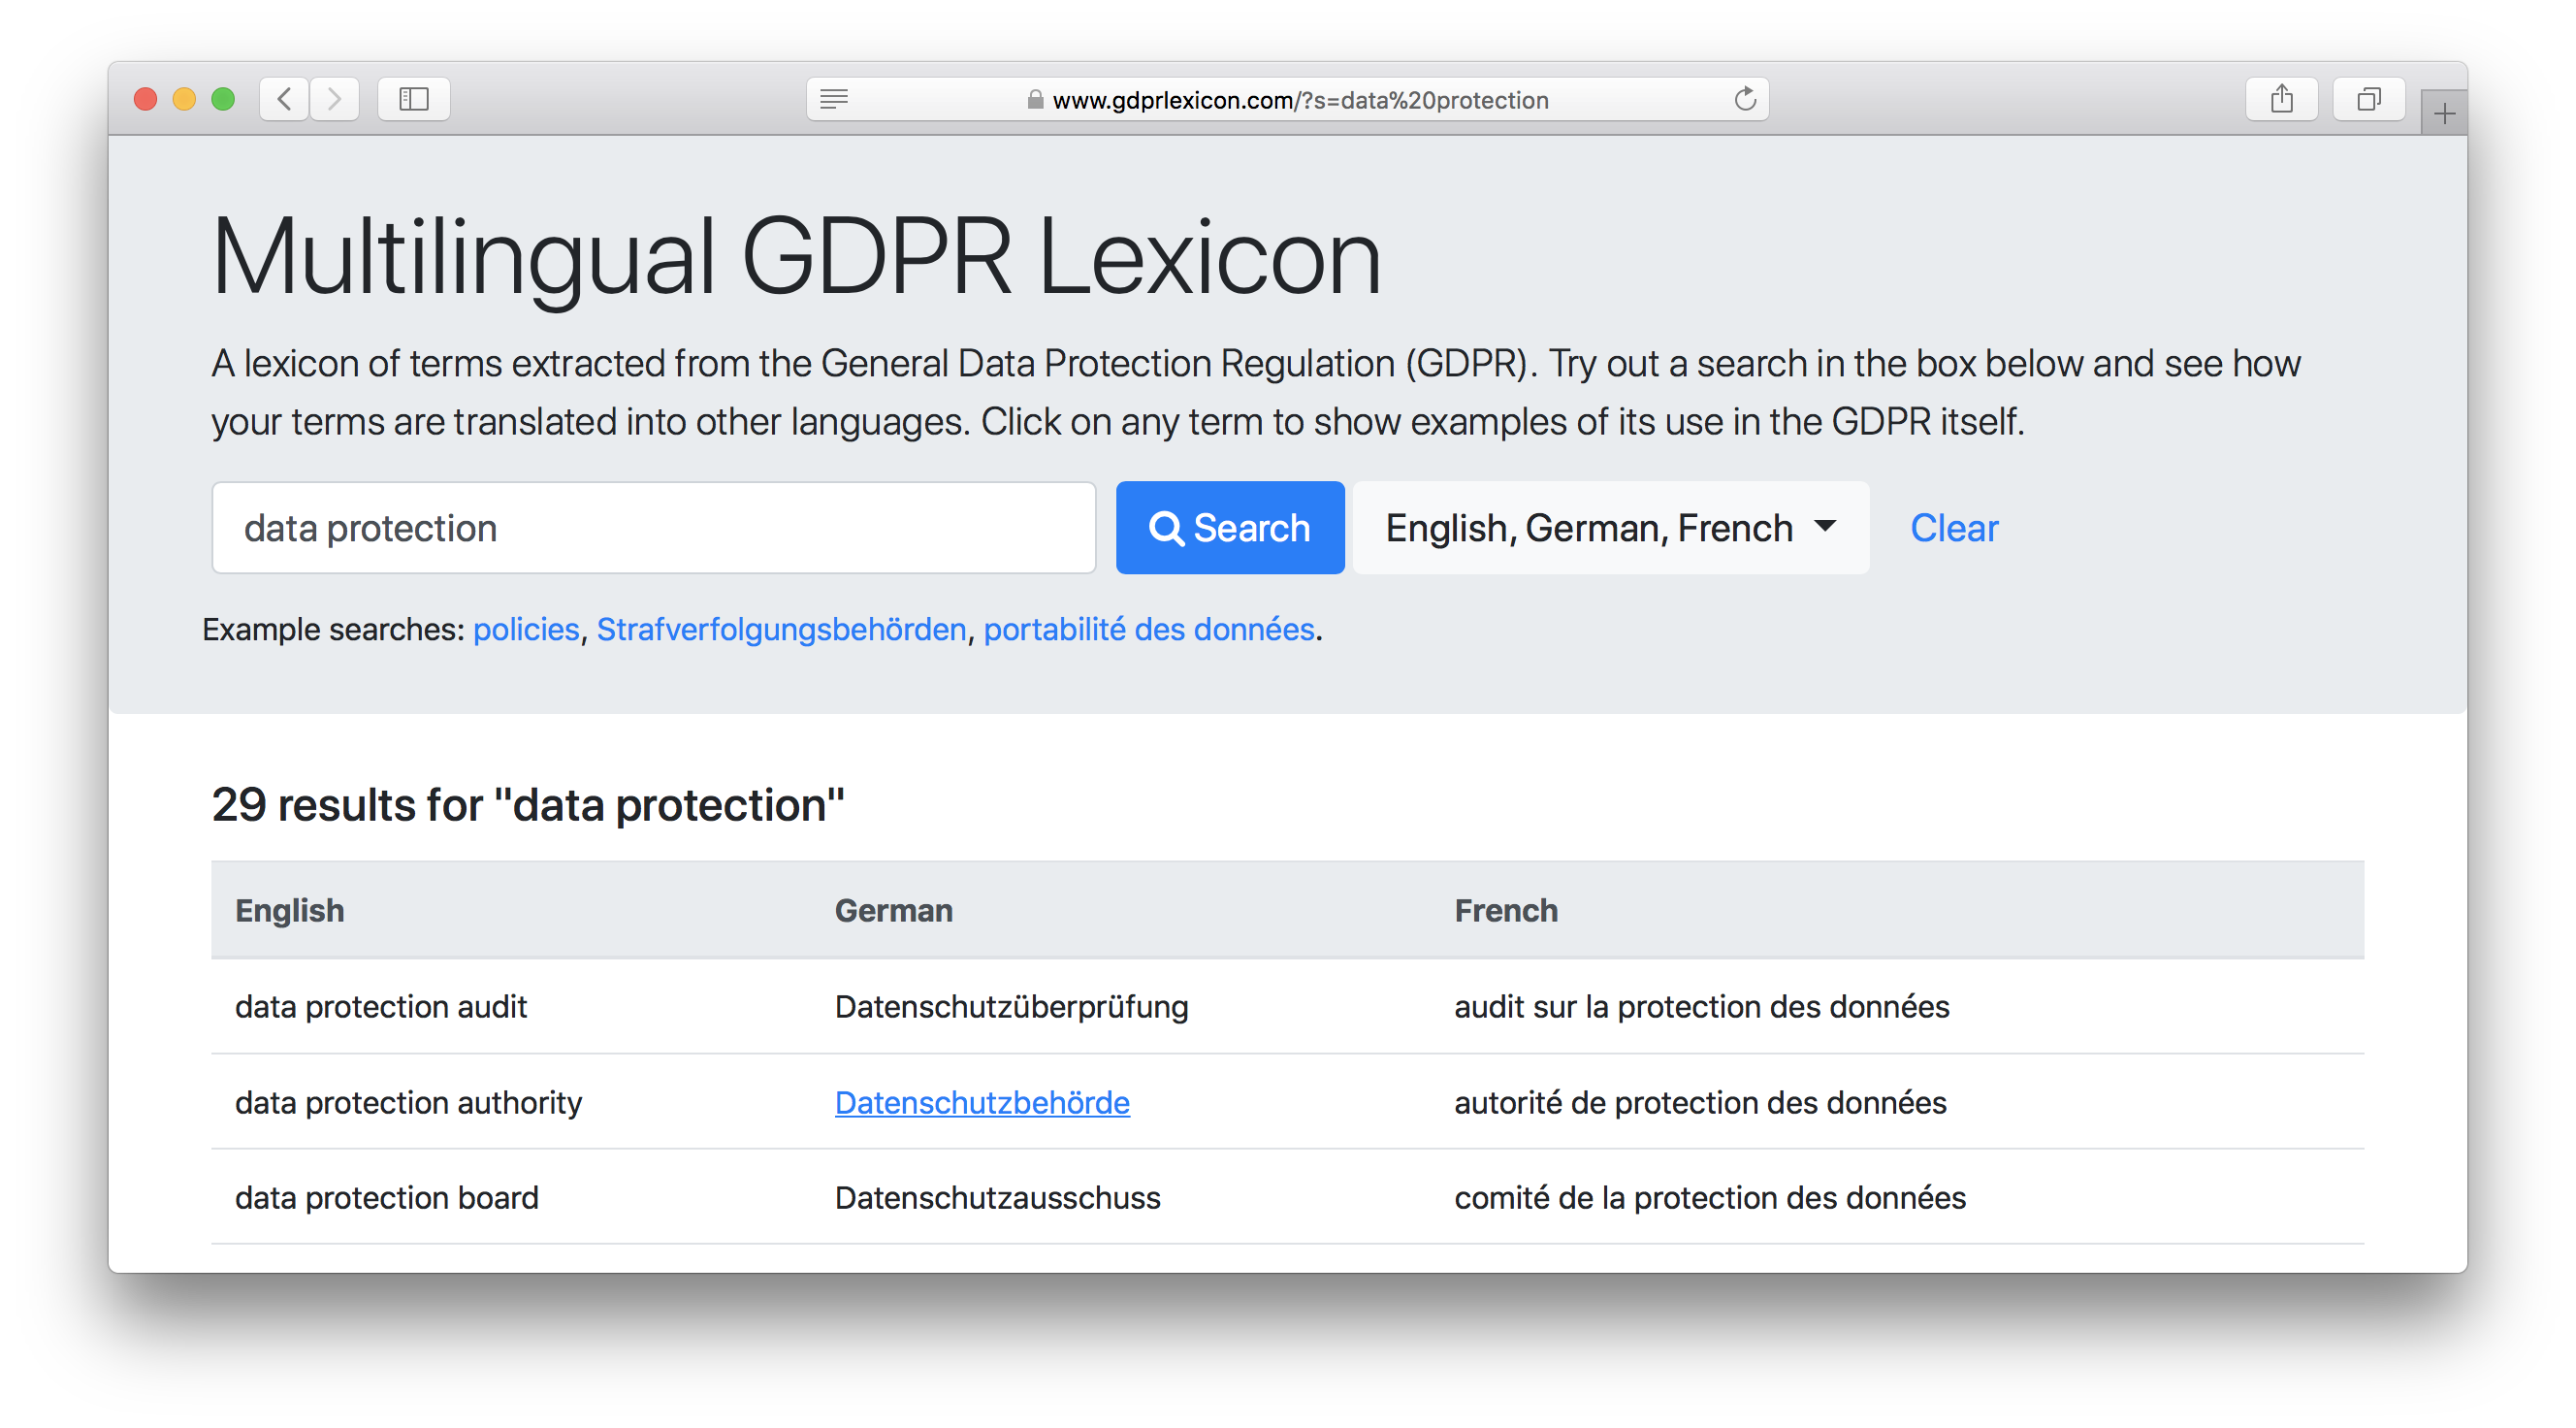 Screenshot of multilingual GDPR lexicon online demo